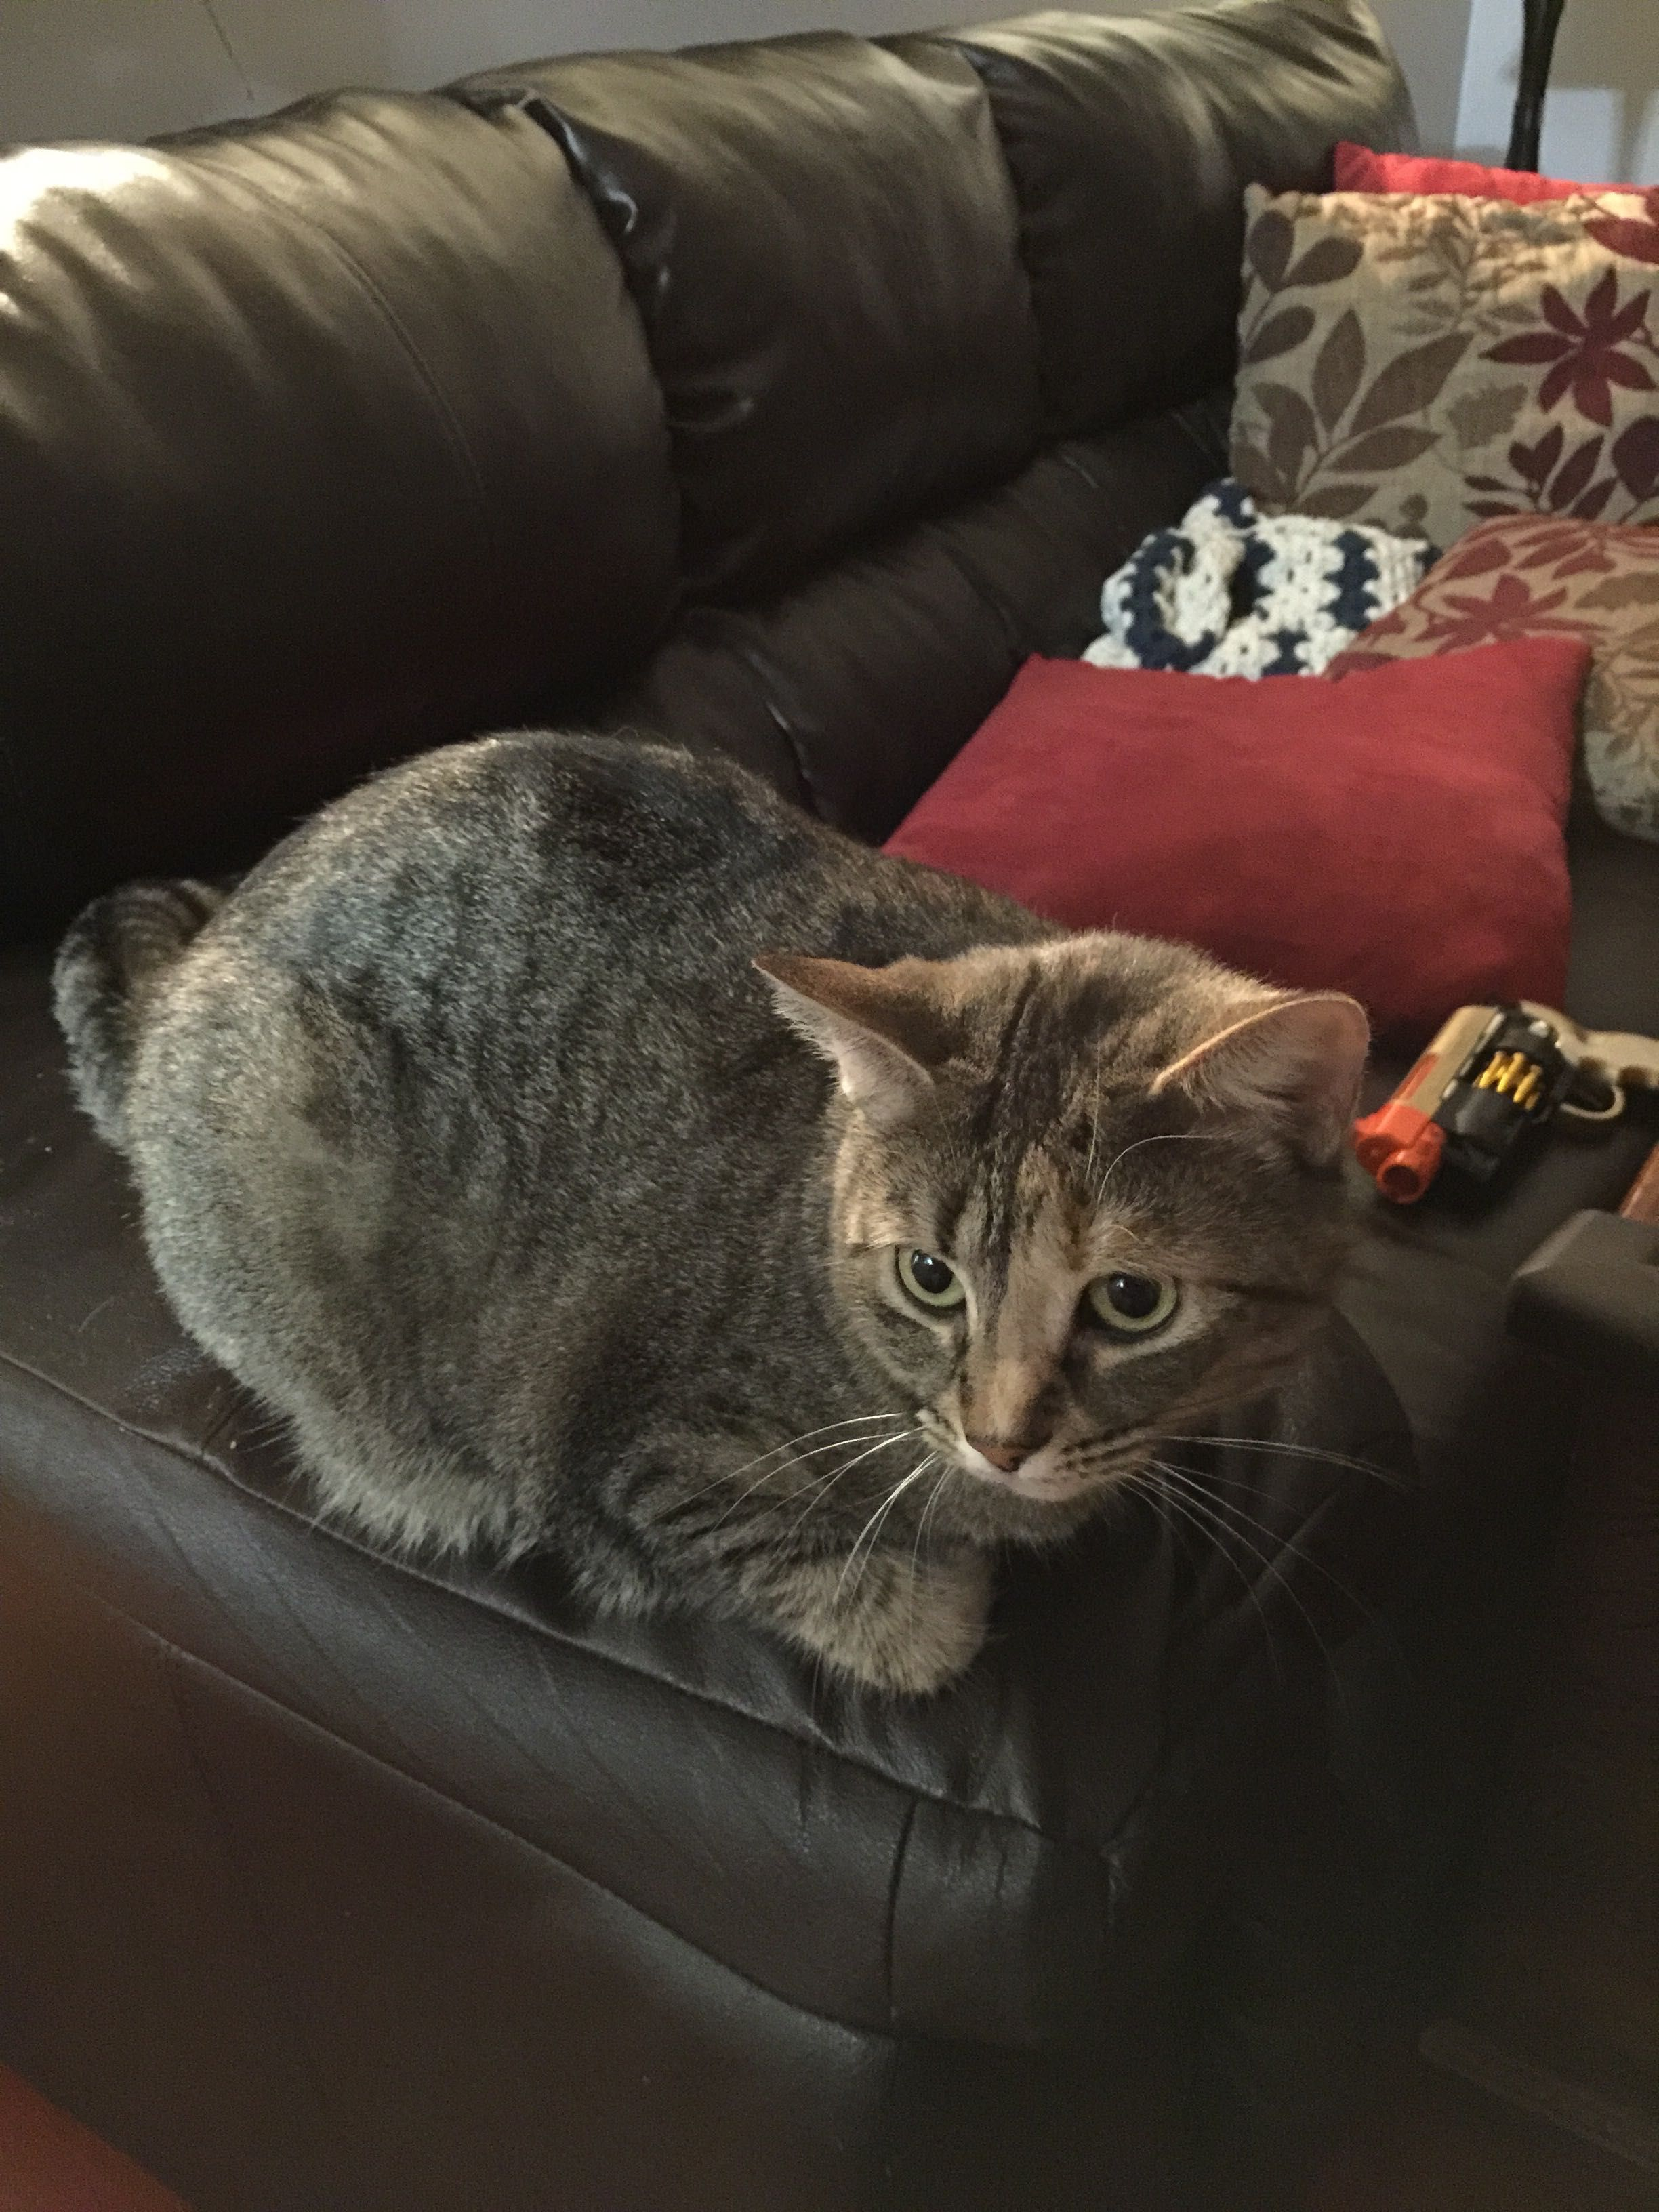 MISSING CAT from ROCKY HILL on 1/13/15 Gray and brown